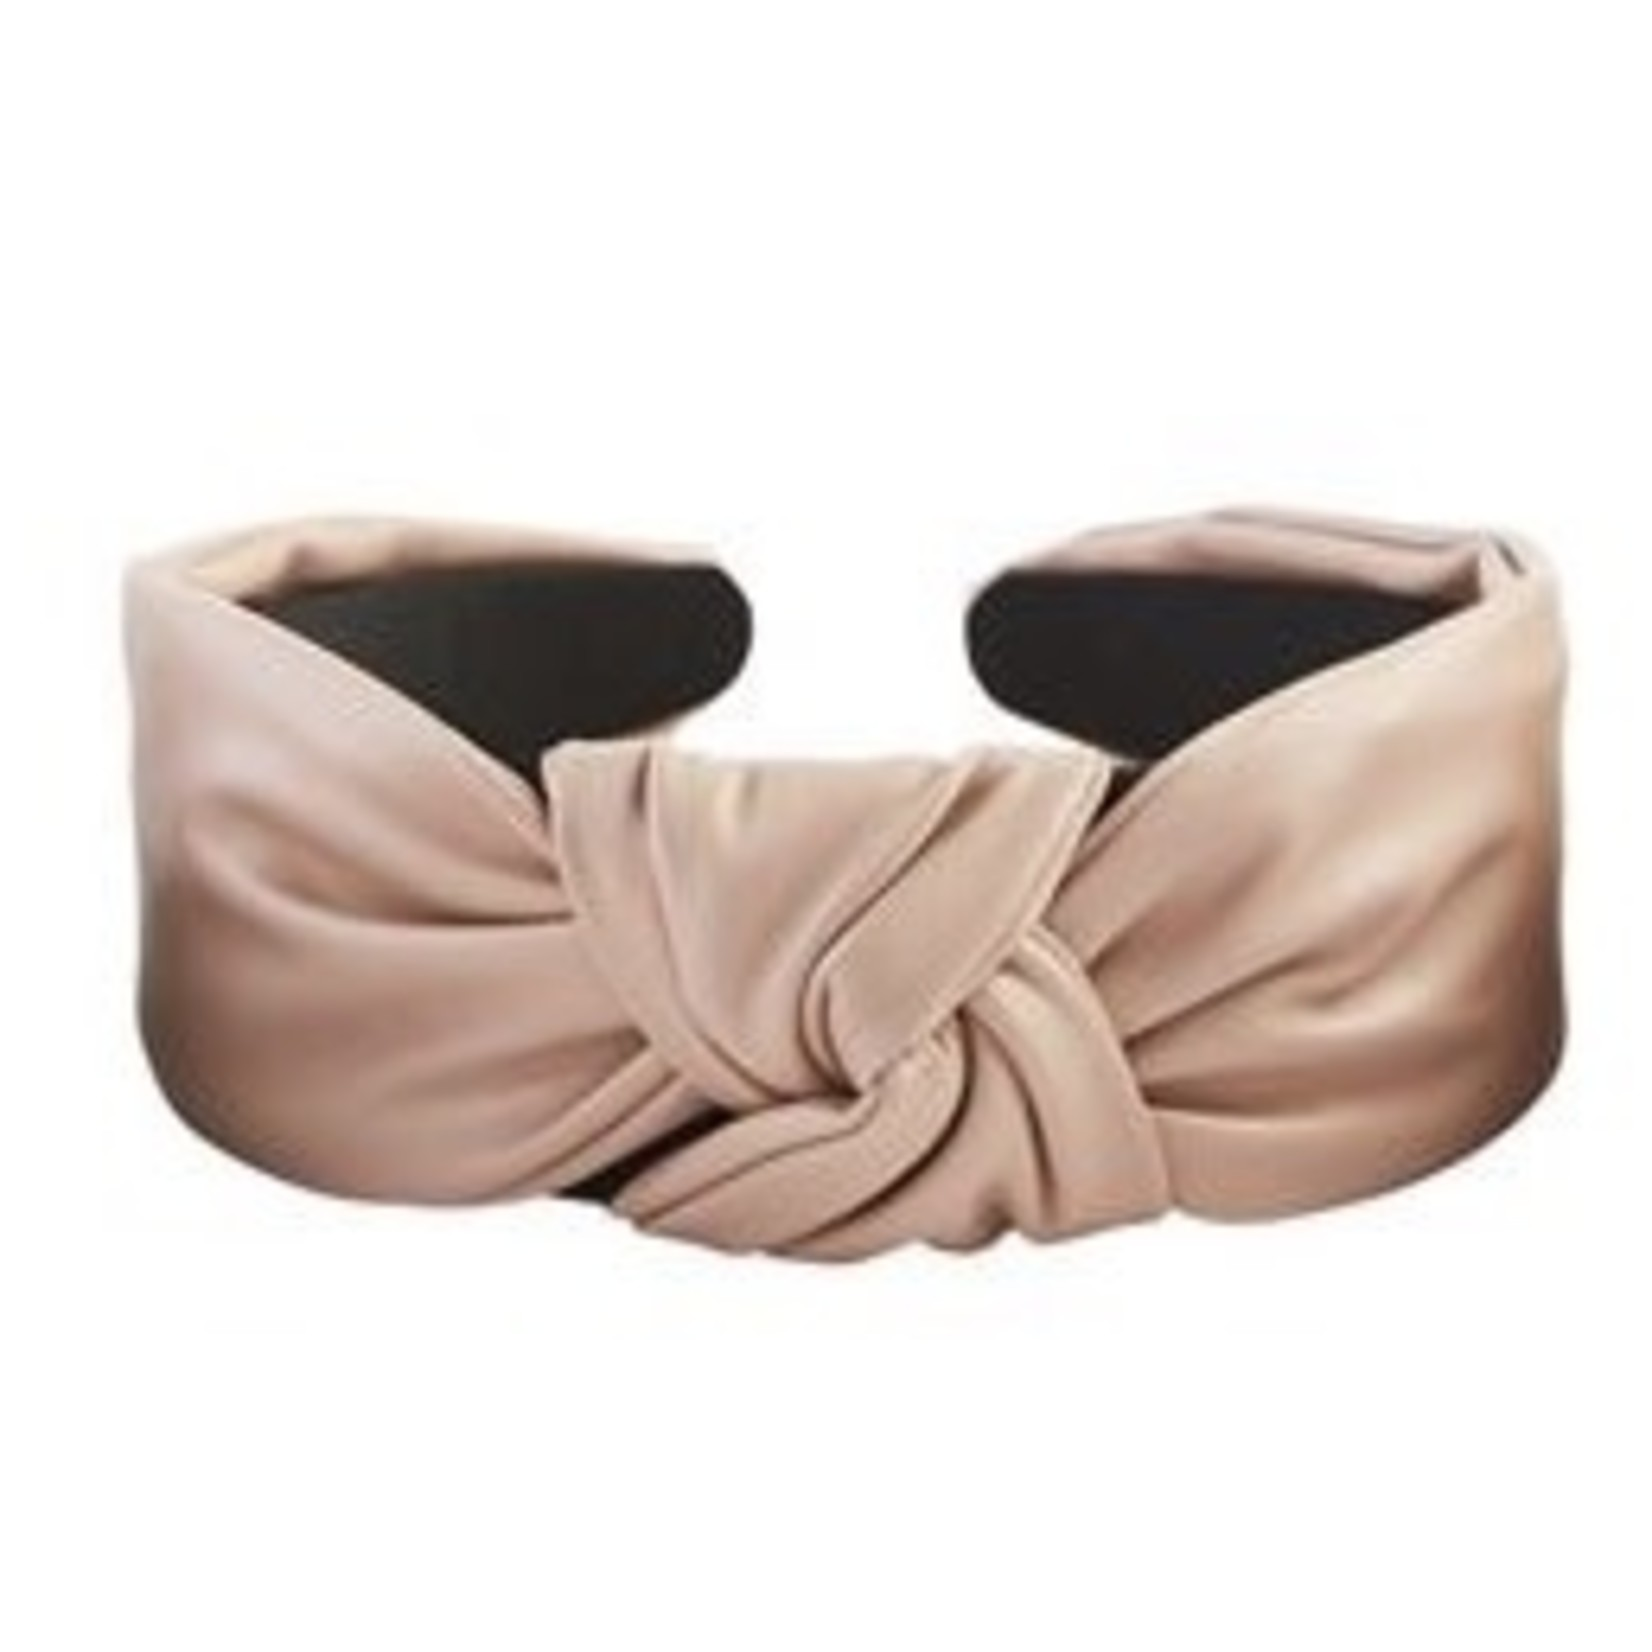 Leather Knotted Headband in Blush